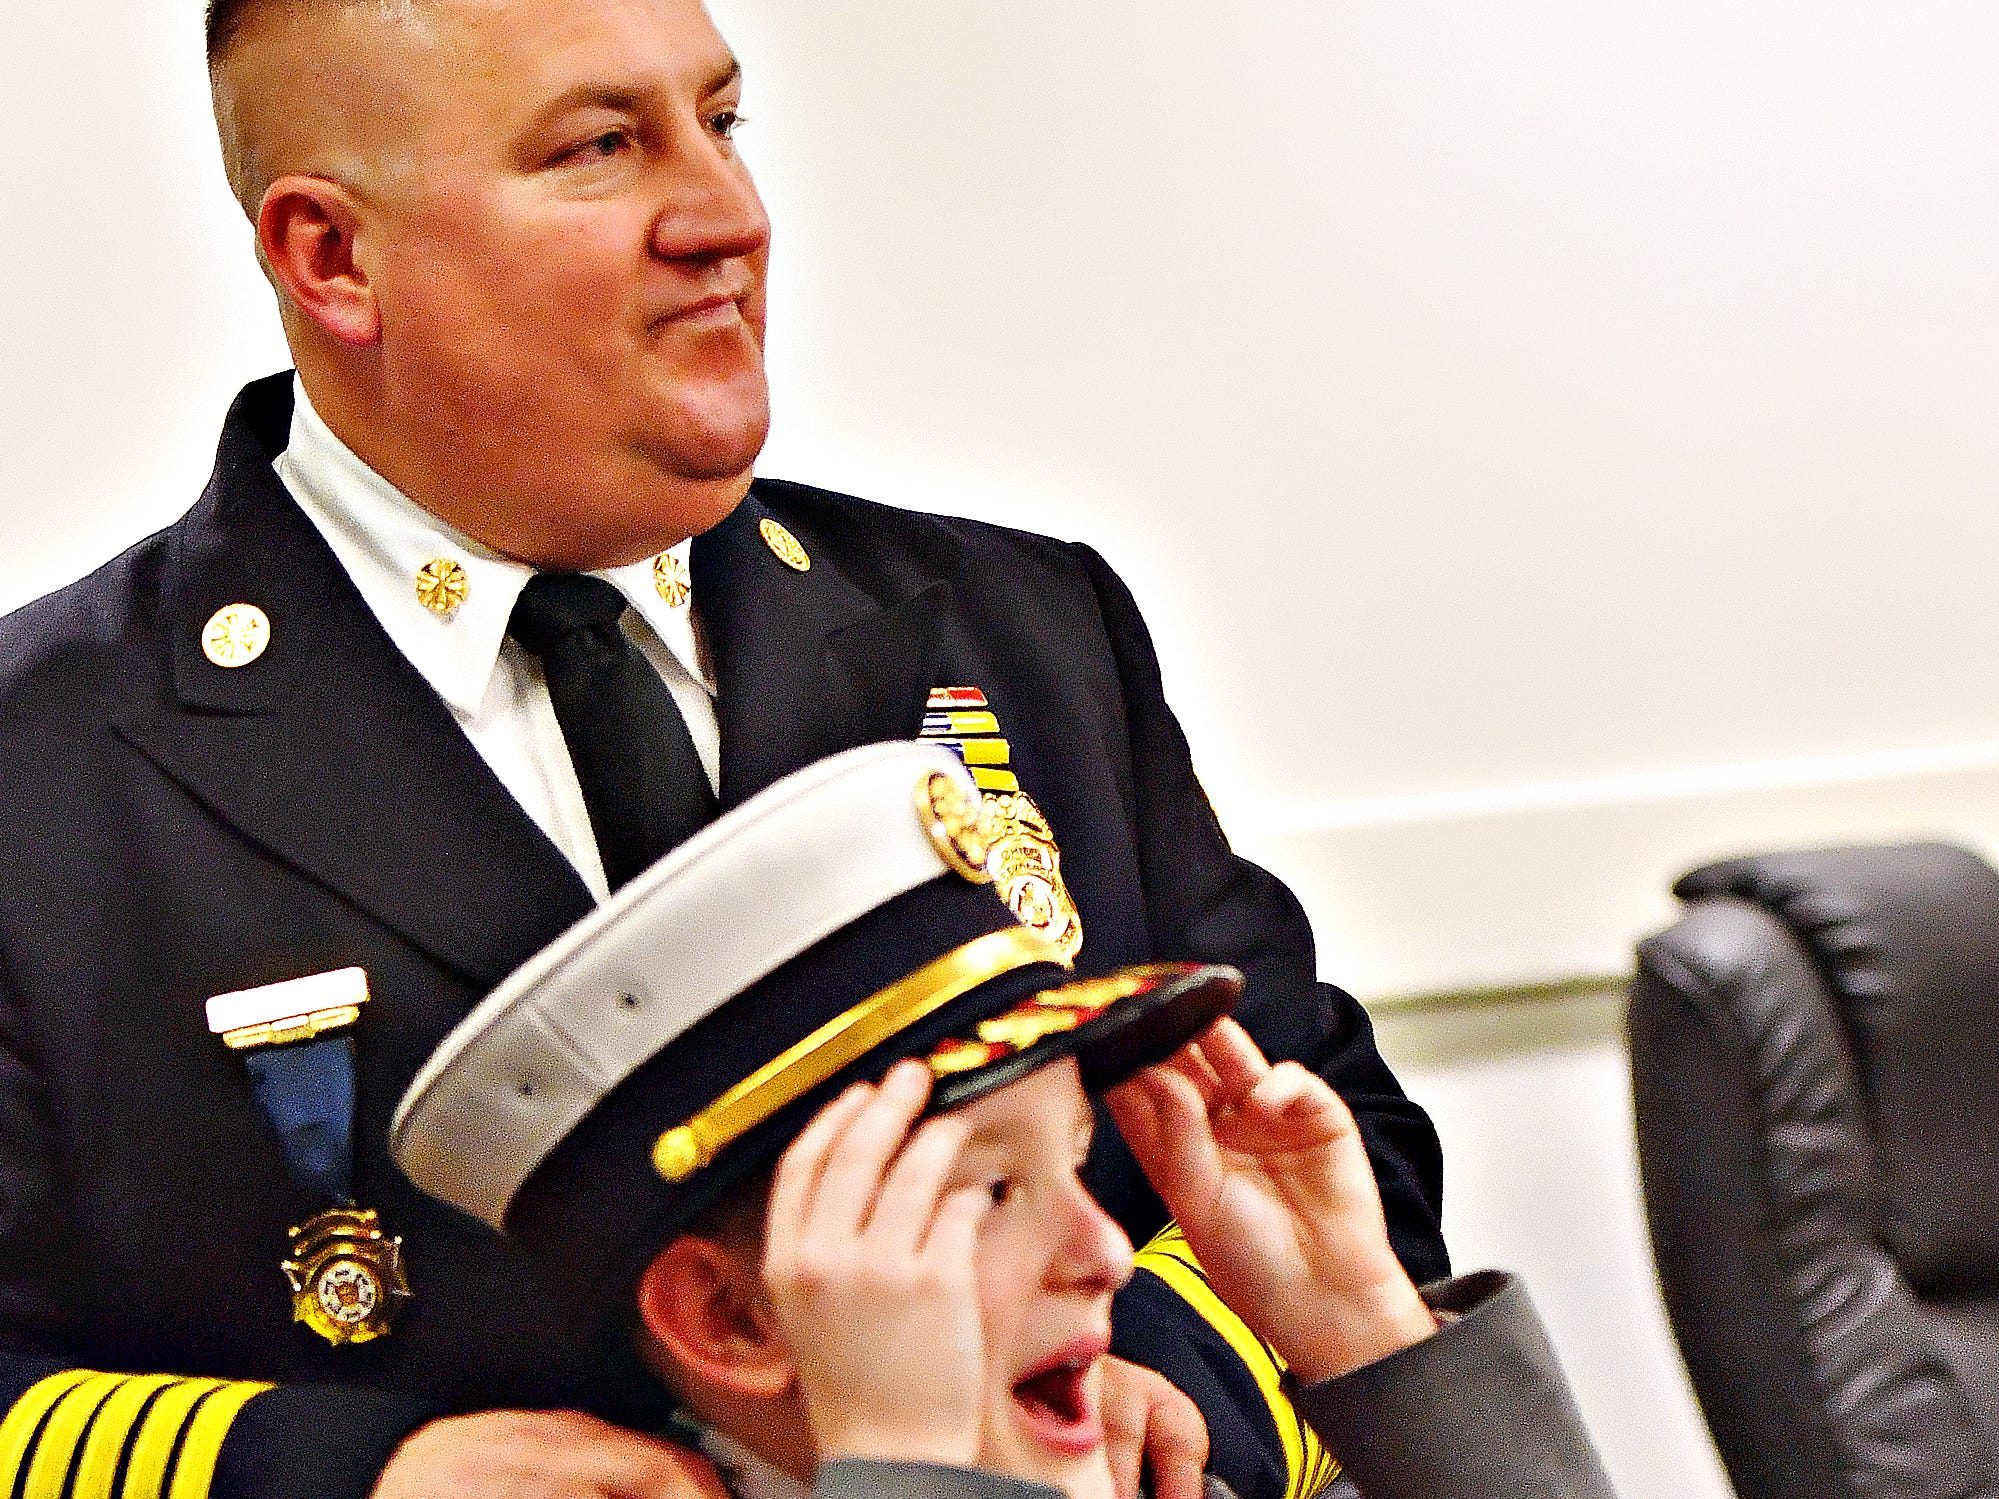 York City Fire Chief Chad Deardorff with his son Adam, 9, following his swearing-in ceremony at York City Hall in York City, Friday, March 8, 2019. Dawn J. Sagert photo